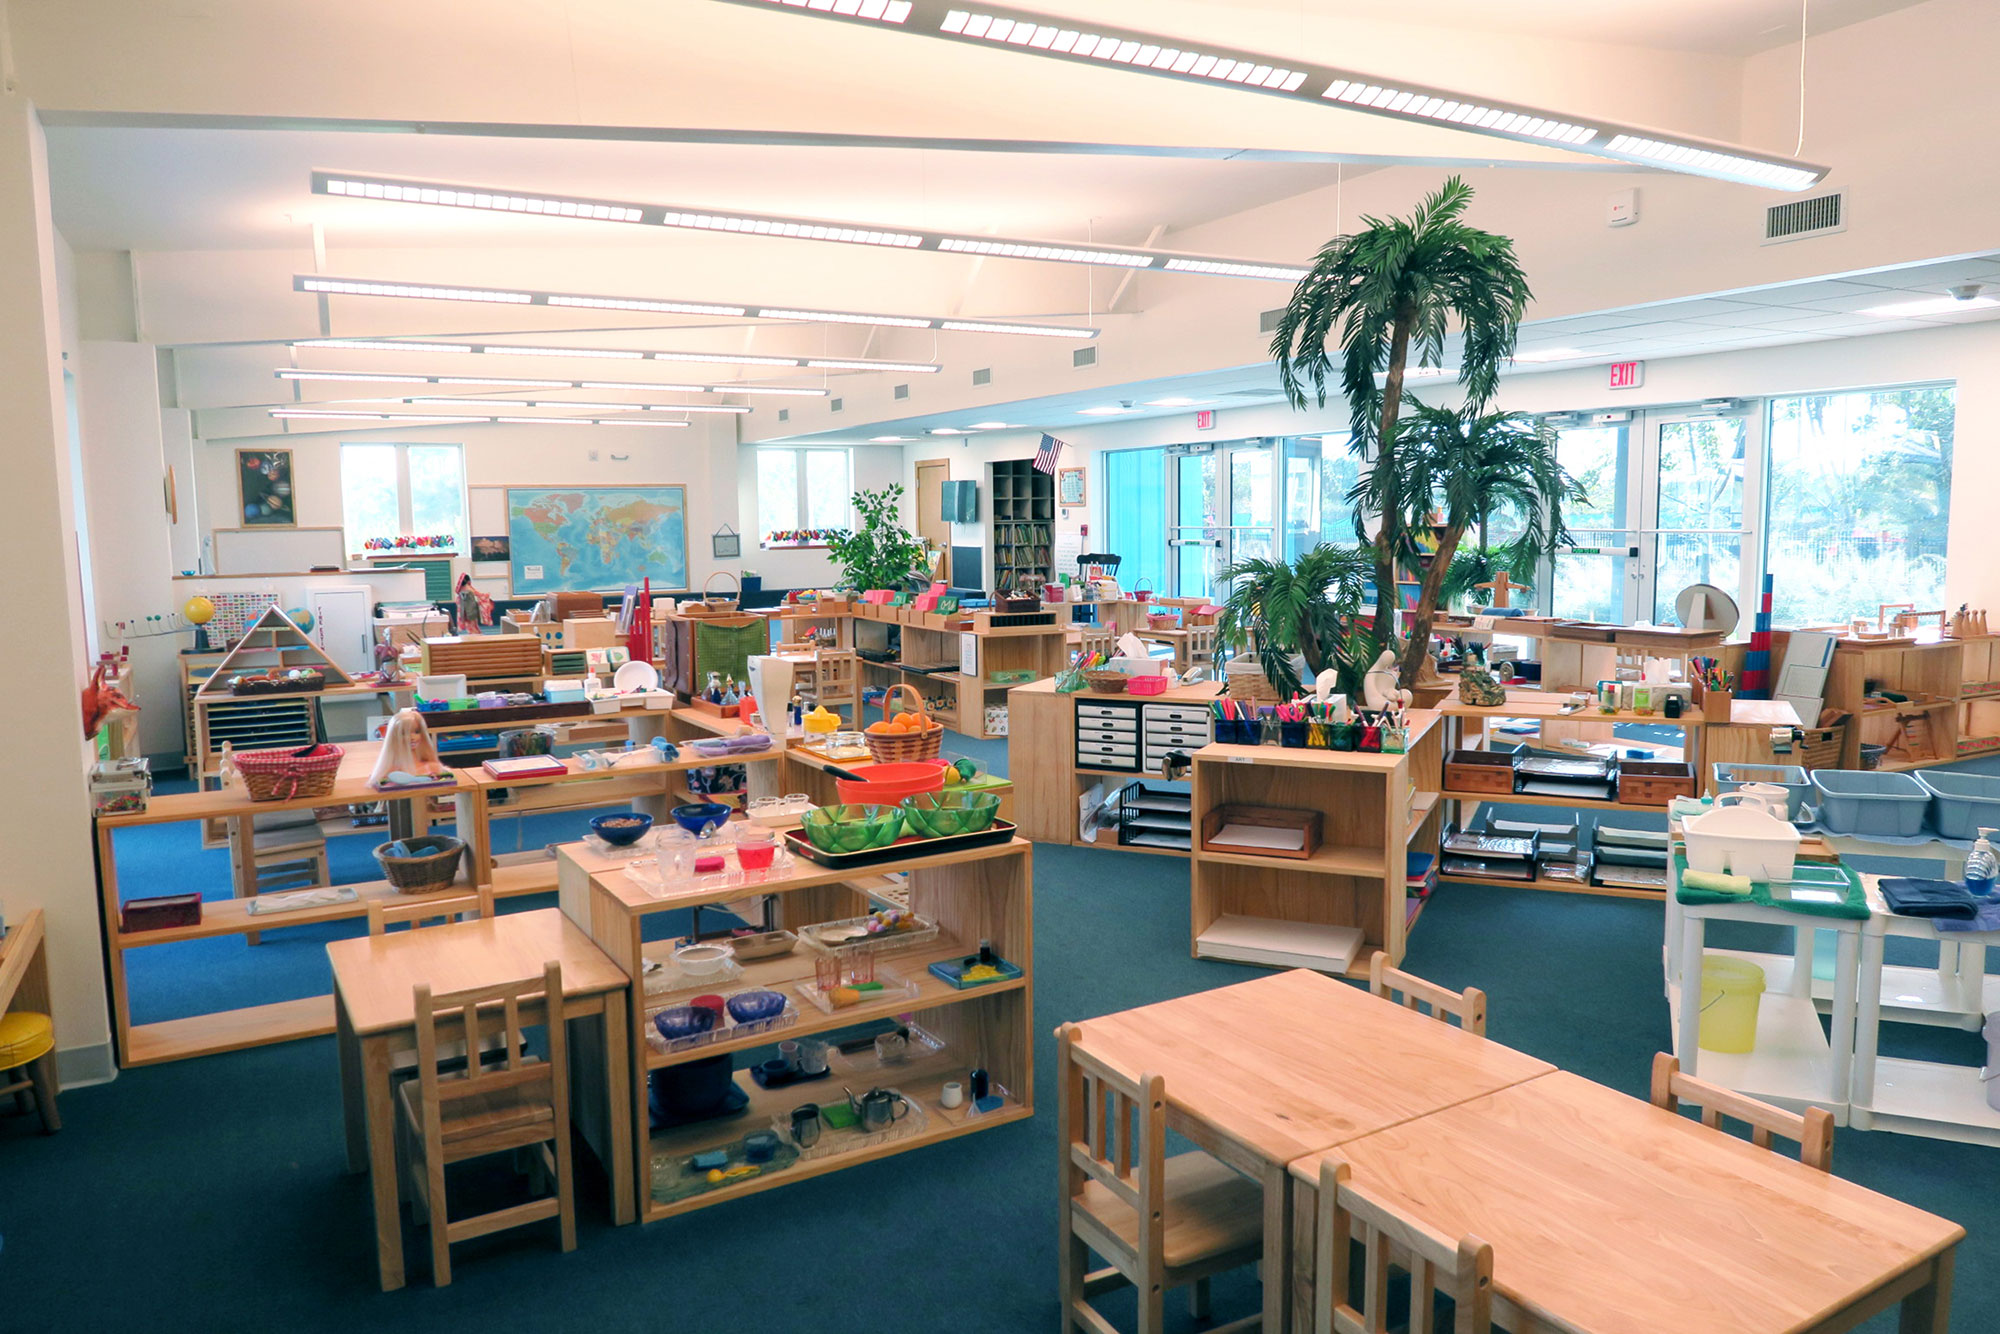 Typical classroom with children's furniture and bookcases.